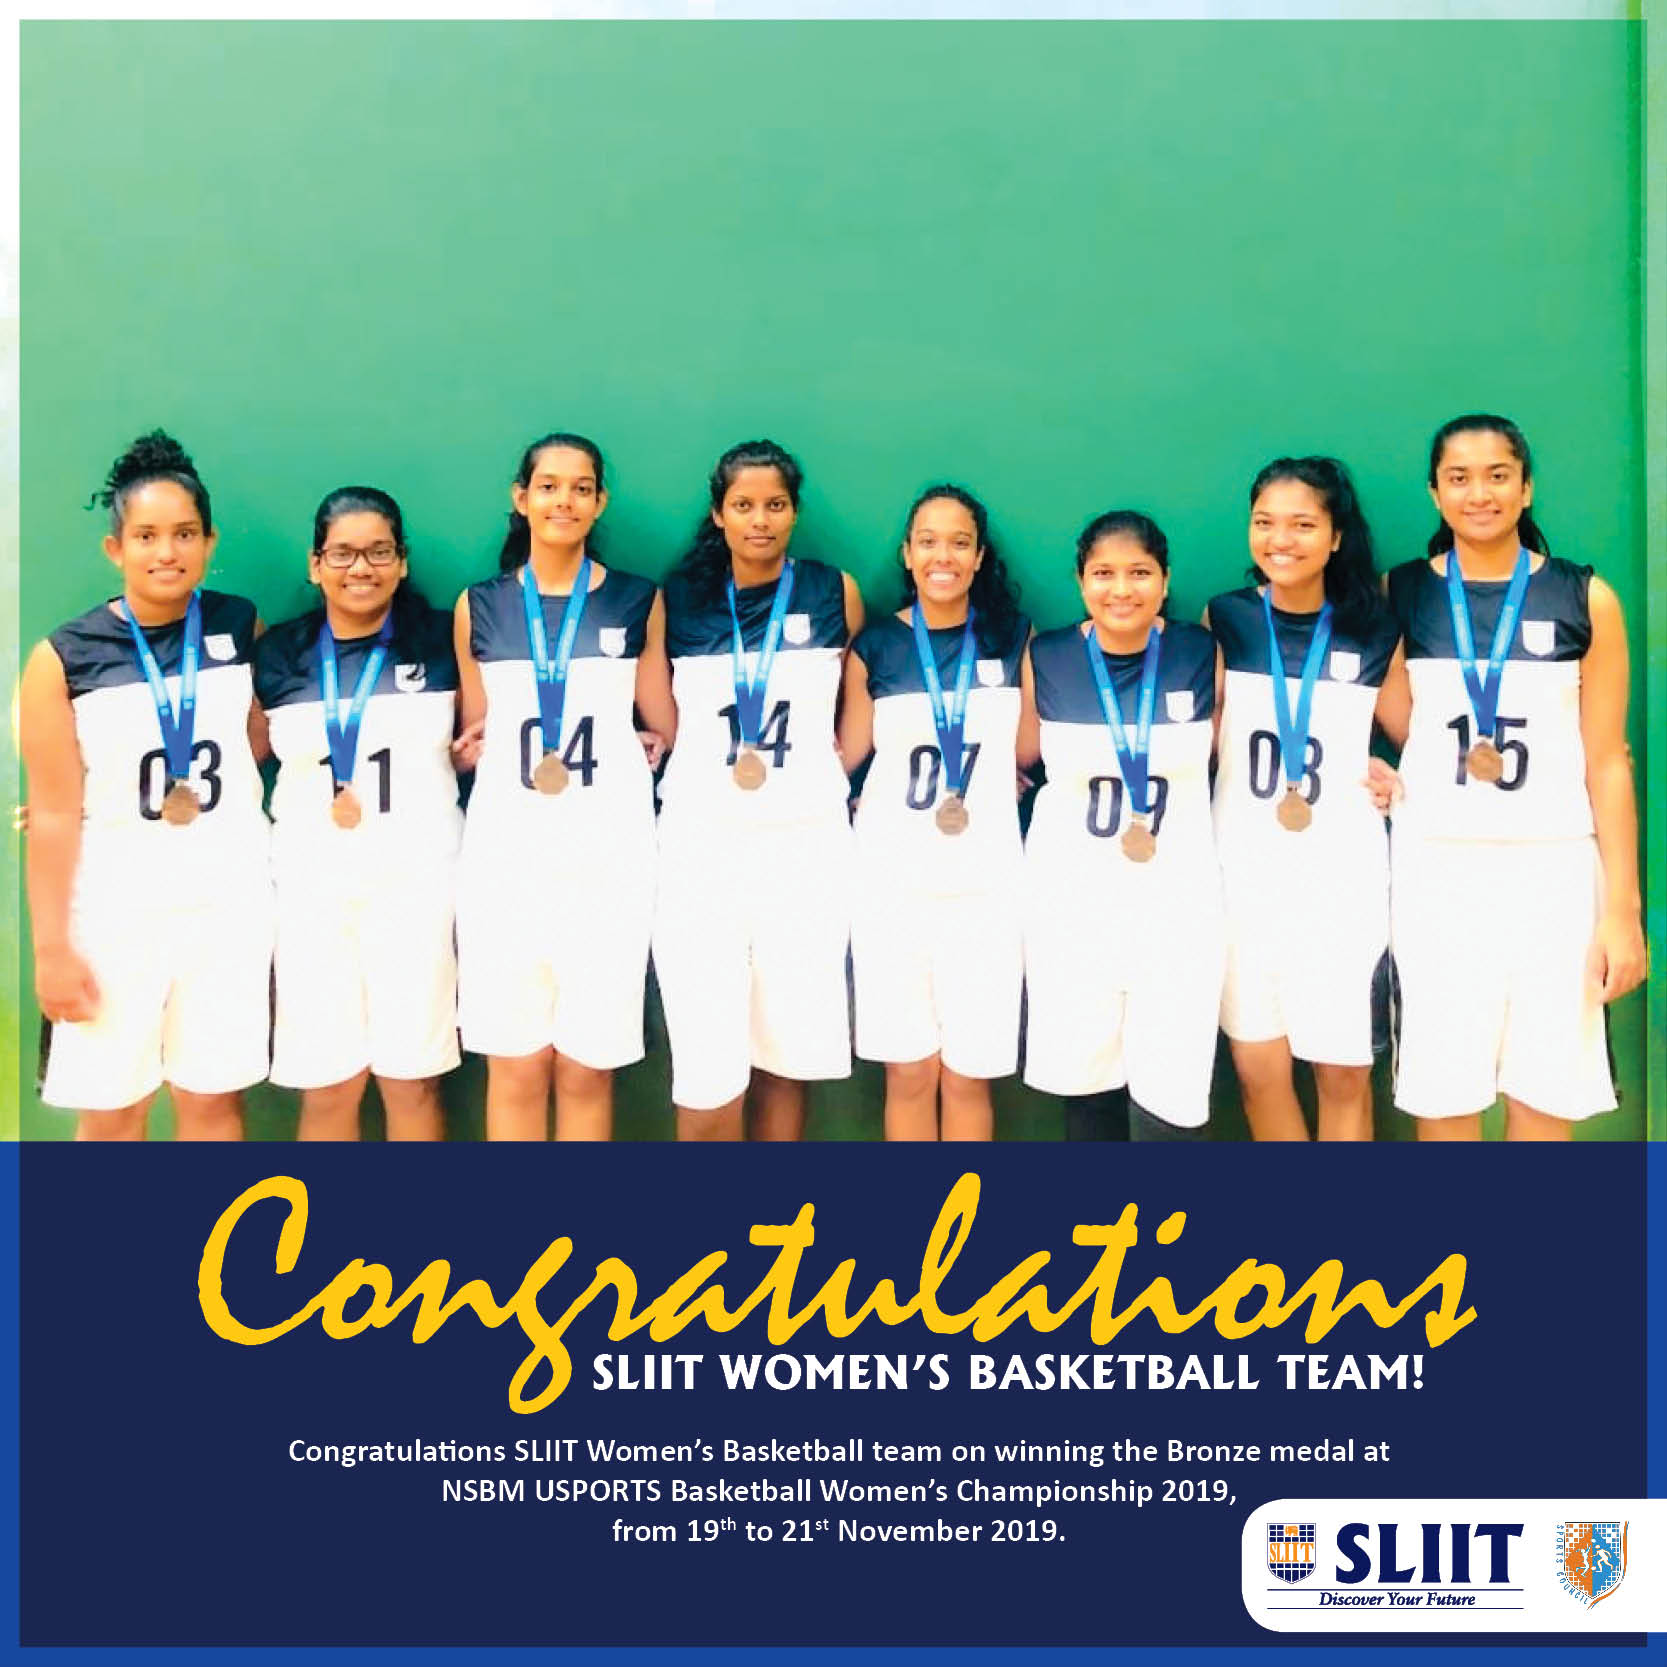 NSBM-Green-University-USPORTS-Basketball-Women's-Championship-2019